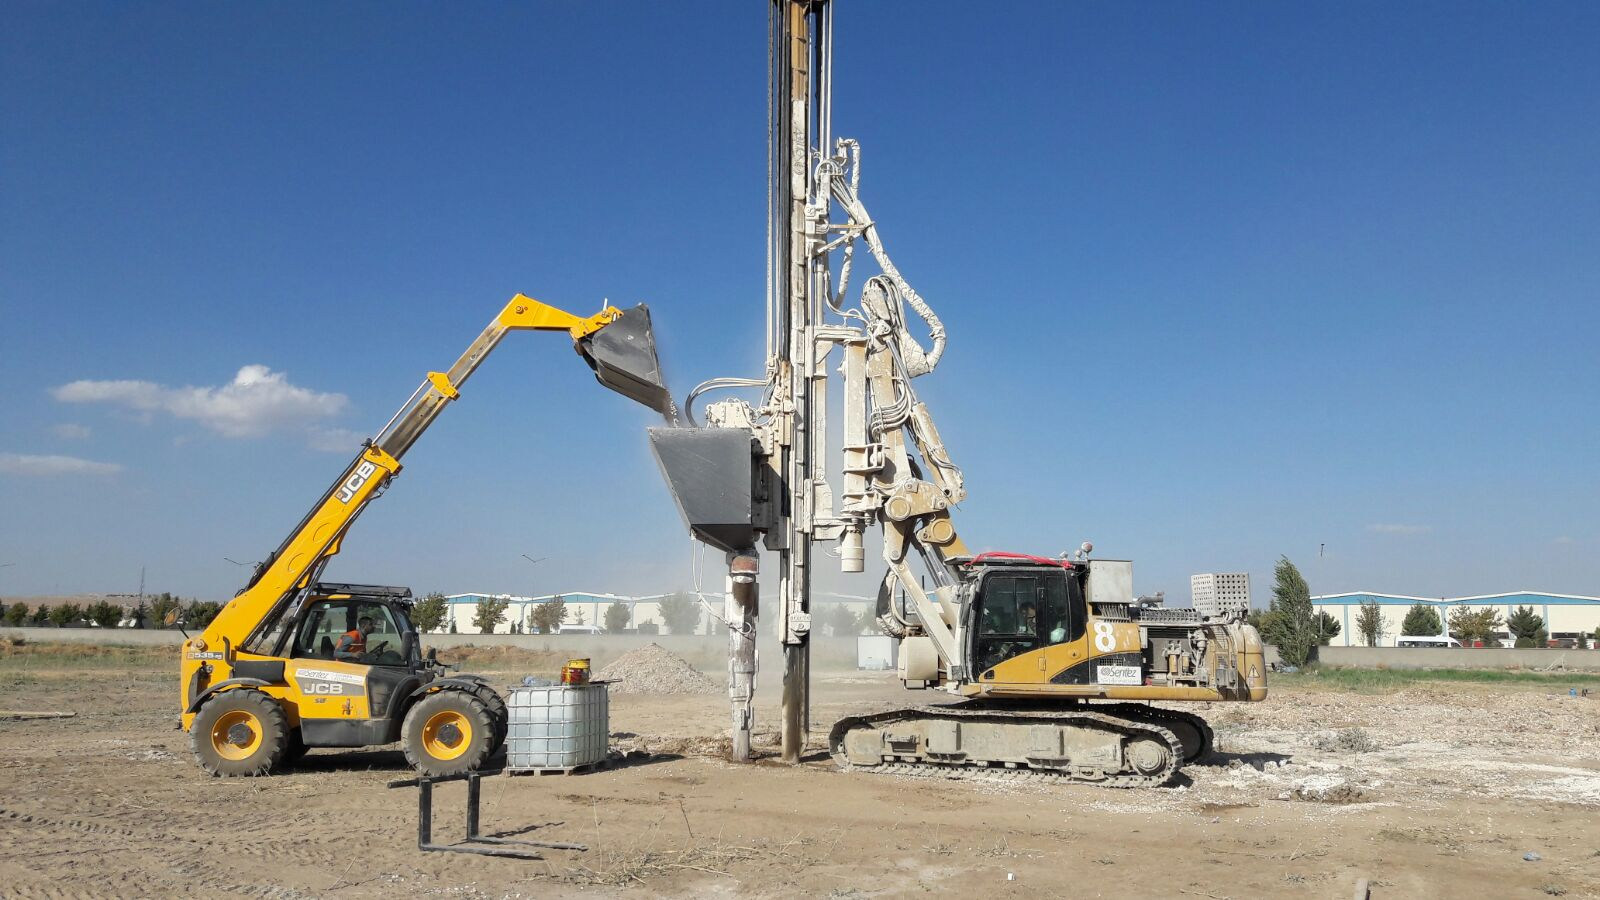 zeki mensucat Impact System was chosen for soil improvement beneath the single footings in Gaziantep.